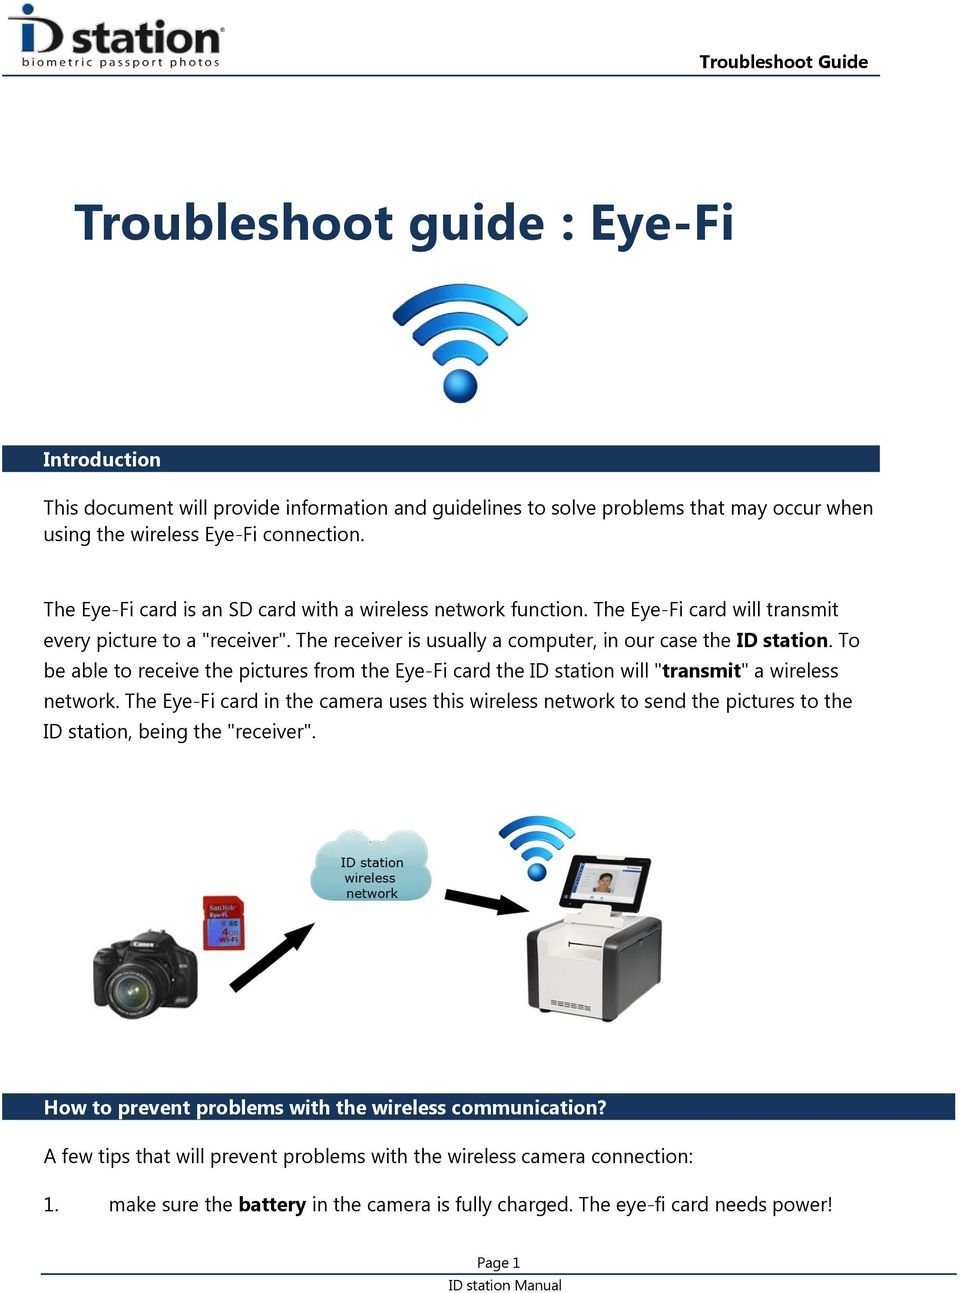 "To be able to receive the pictures from the Eye-Fi card the ID station will ""transmit"" a wireless network."